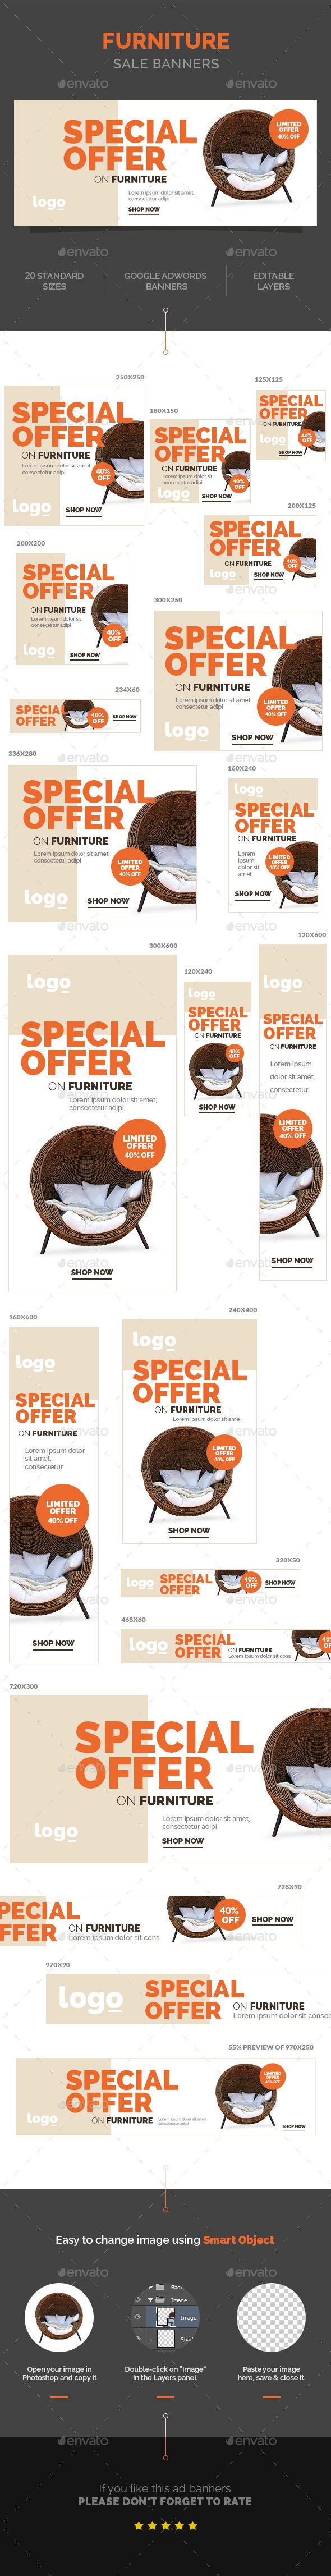 Furniture Sale Banners Template #design Download: http://graphicriver.net/item/furniture-sale-banners/10799036?ref=ksioks